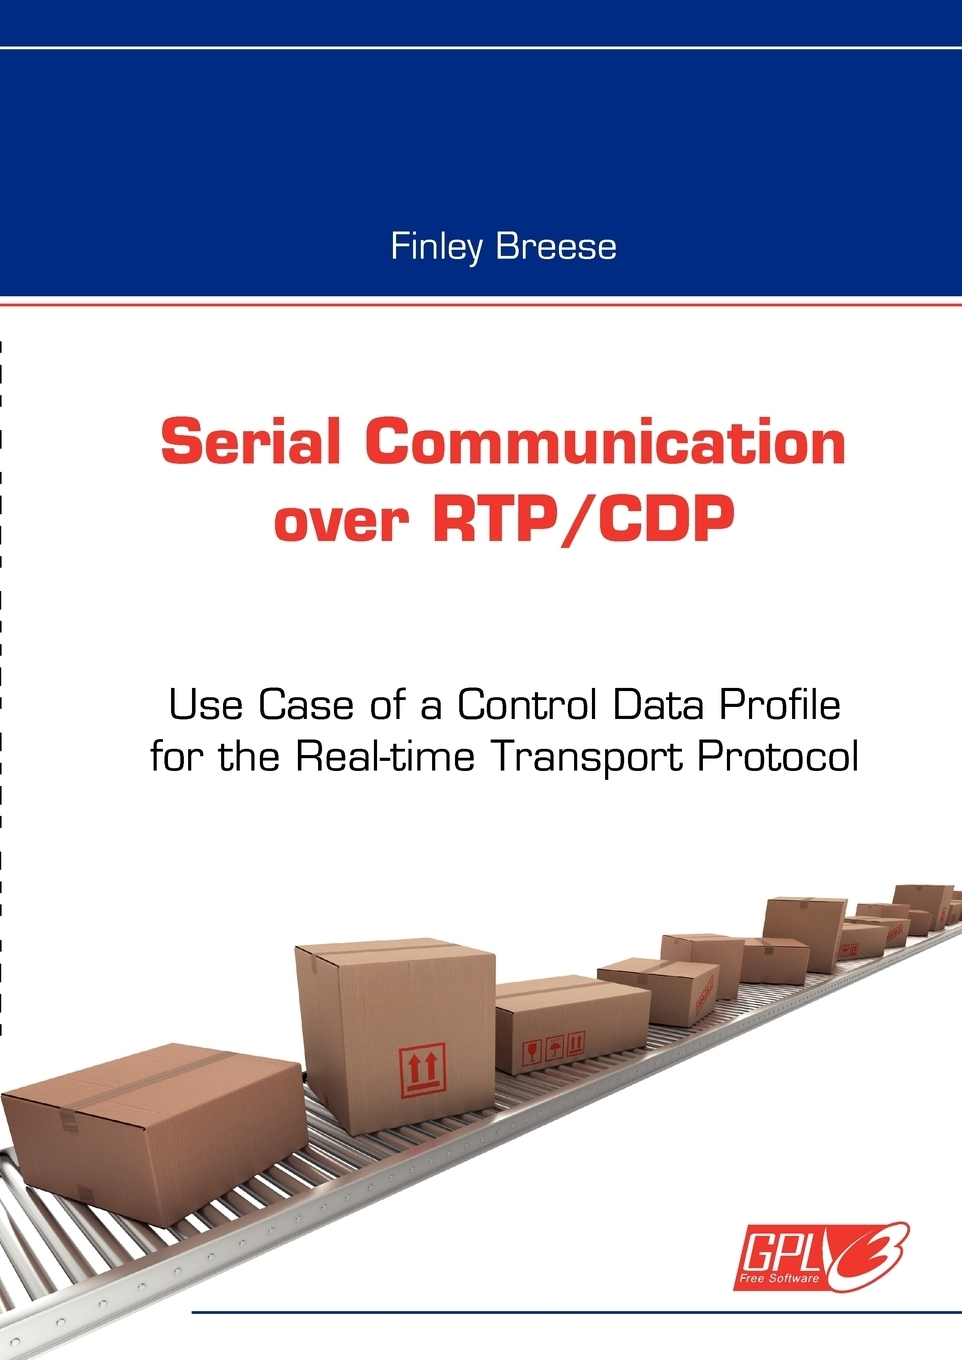 Finley Breese. Serial Communication over RTP/CDP